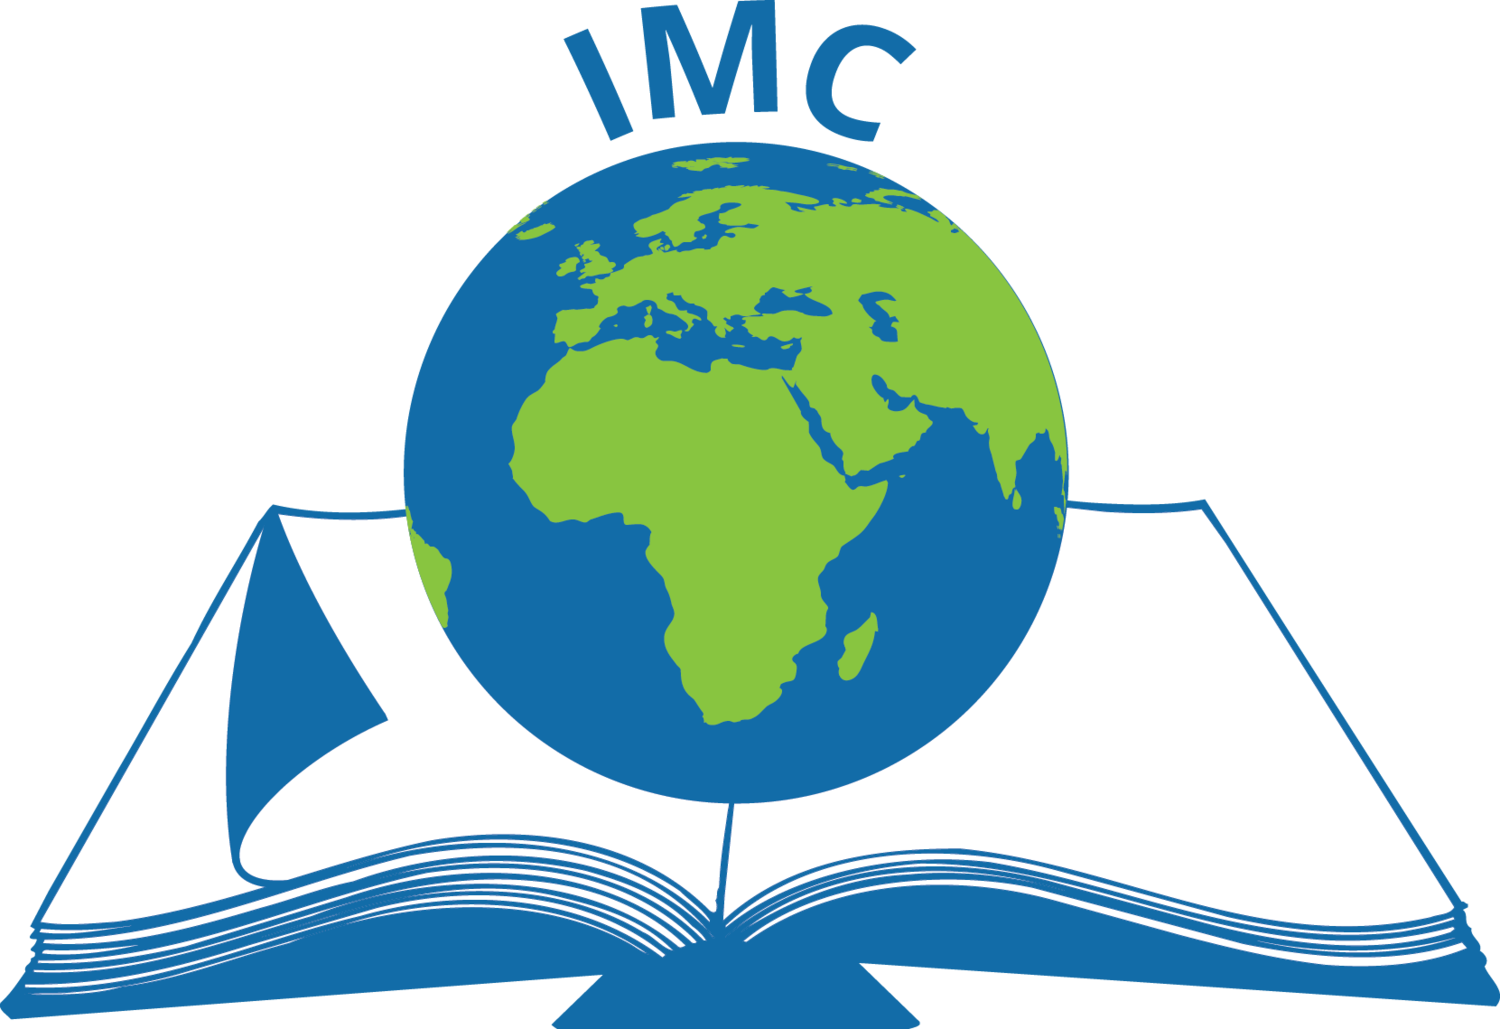 New events interfaith mediation. Clipart globe current event